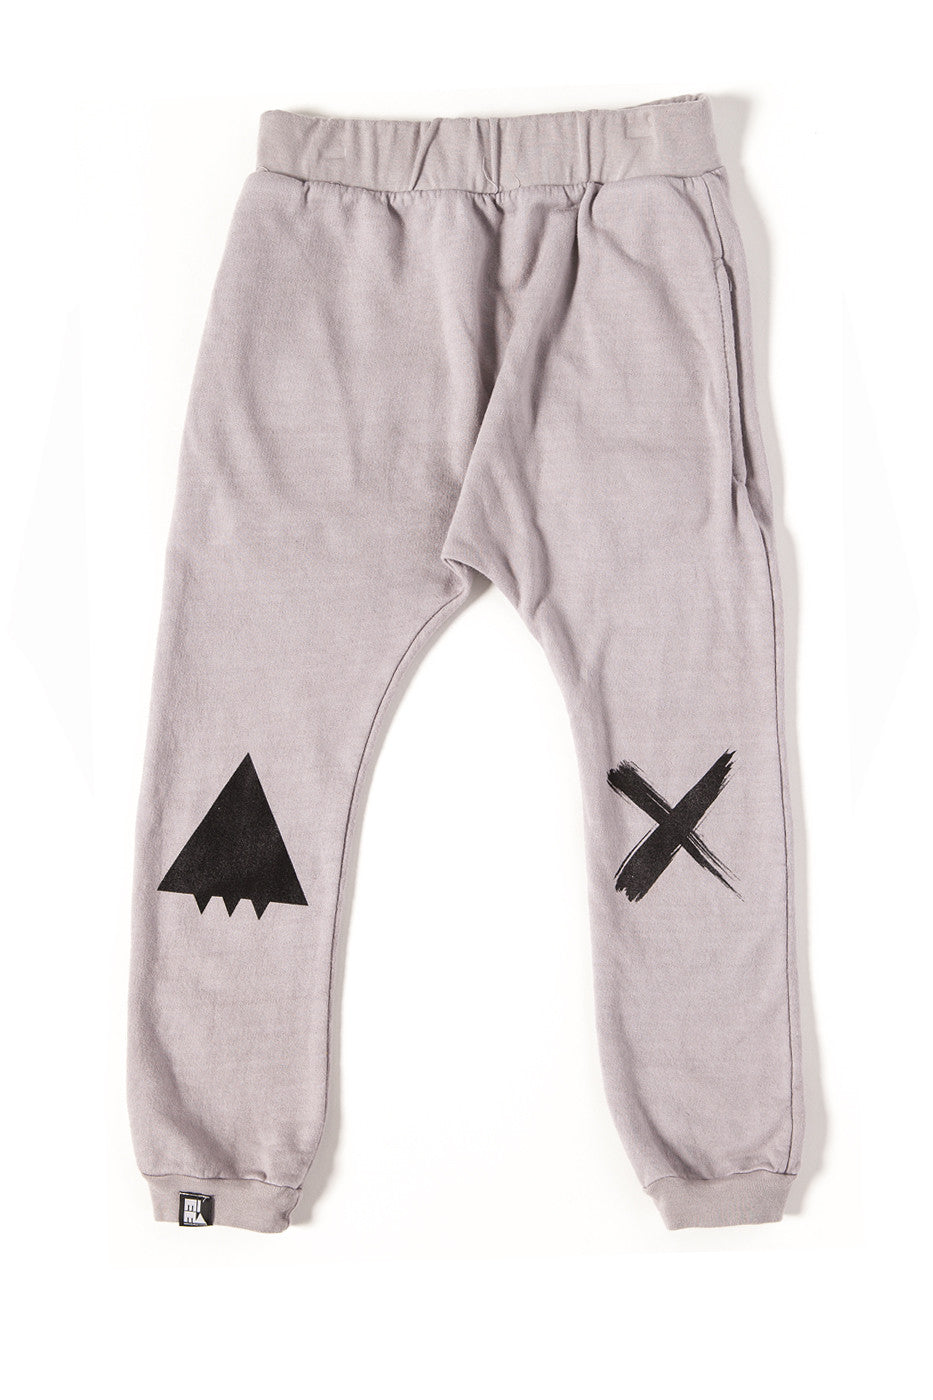 Mini And Maximus Organic Cotton Smile Drop Crotch Pant Cool Gray-PANT-MINI AND MAXIMUS-Billie & Axel, Montreal, Canada & USA